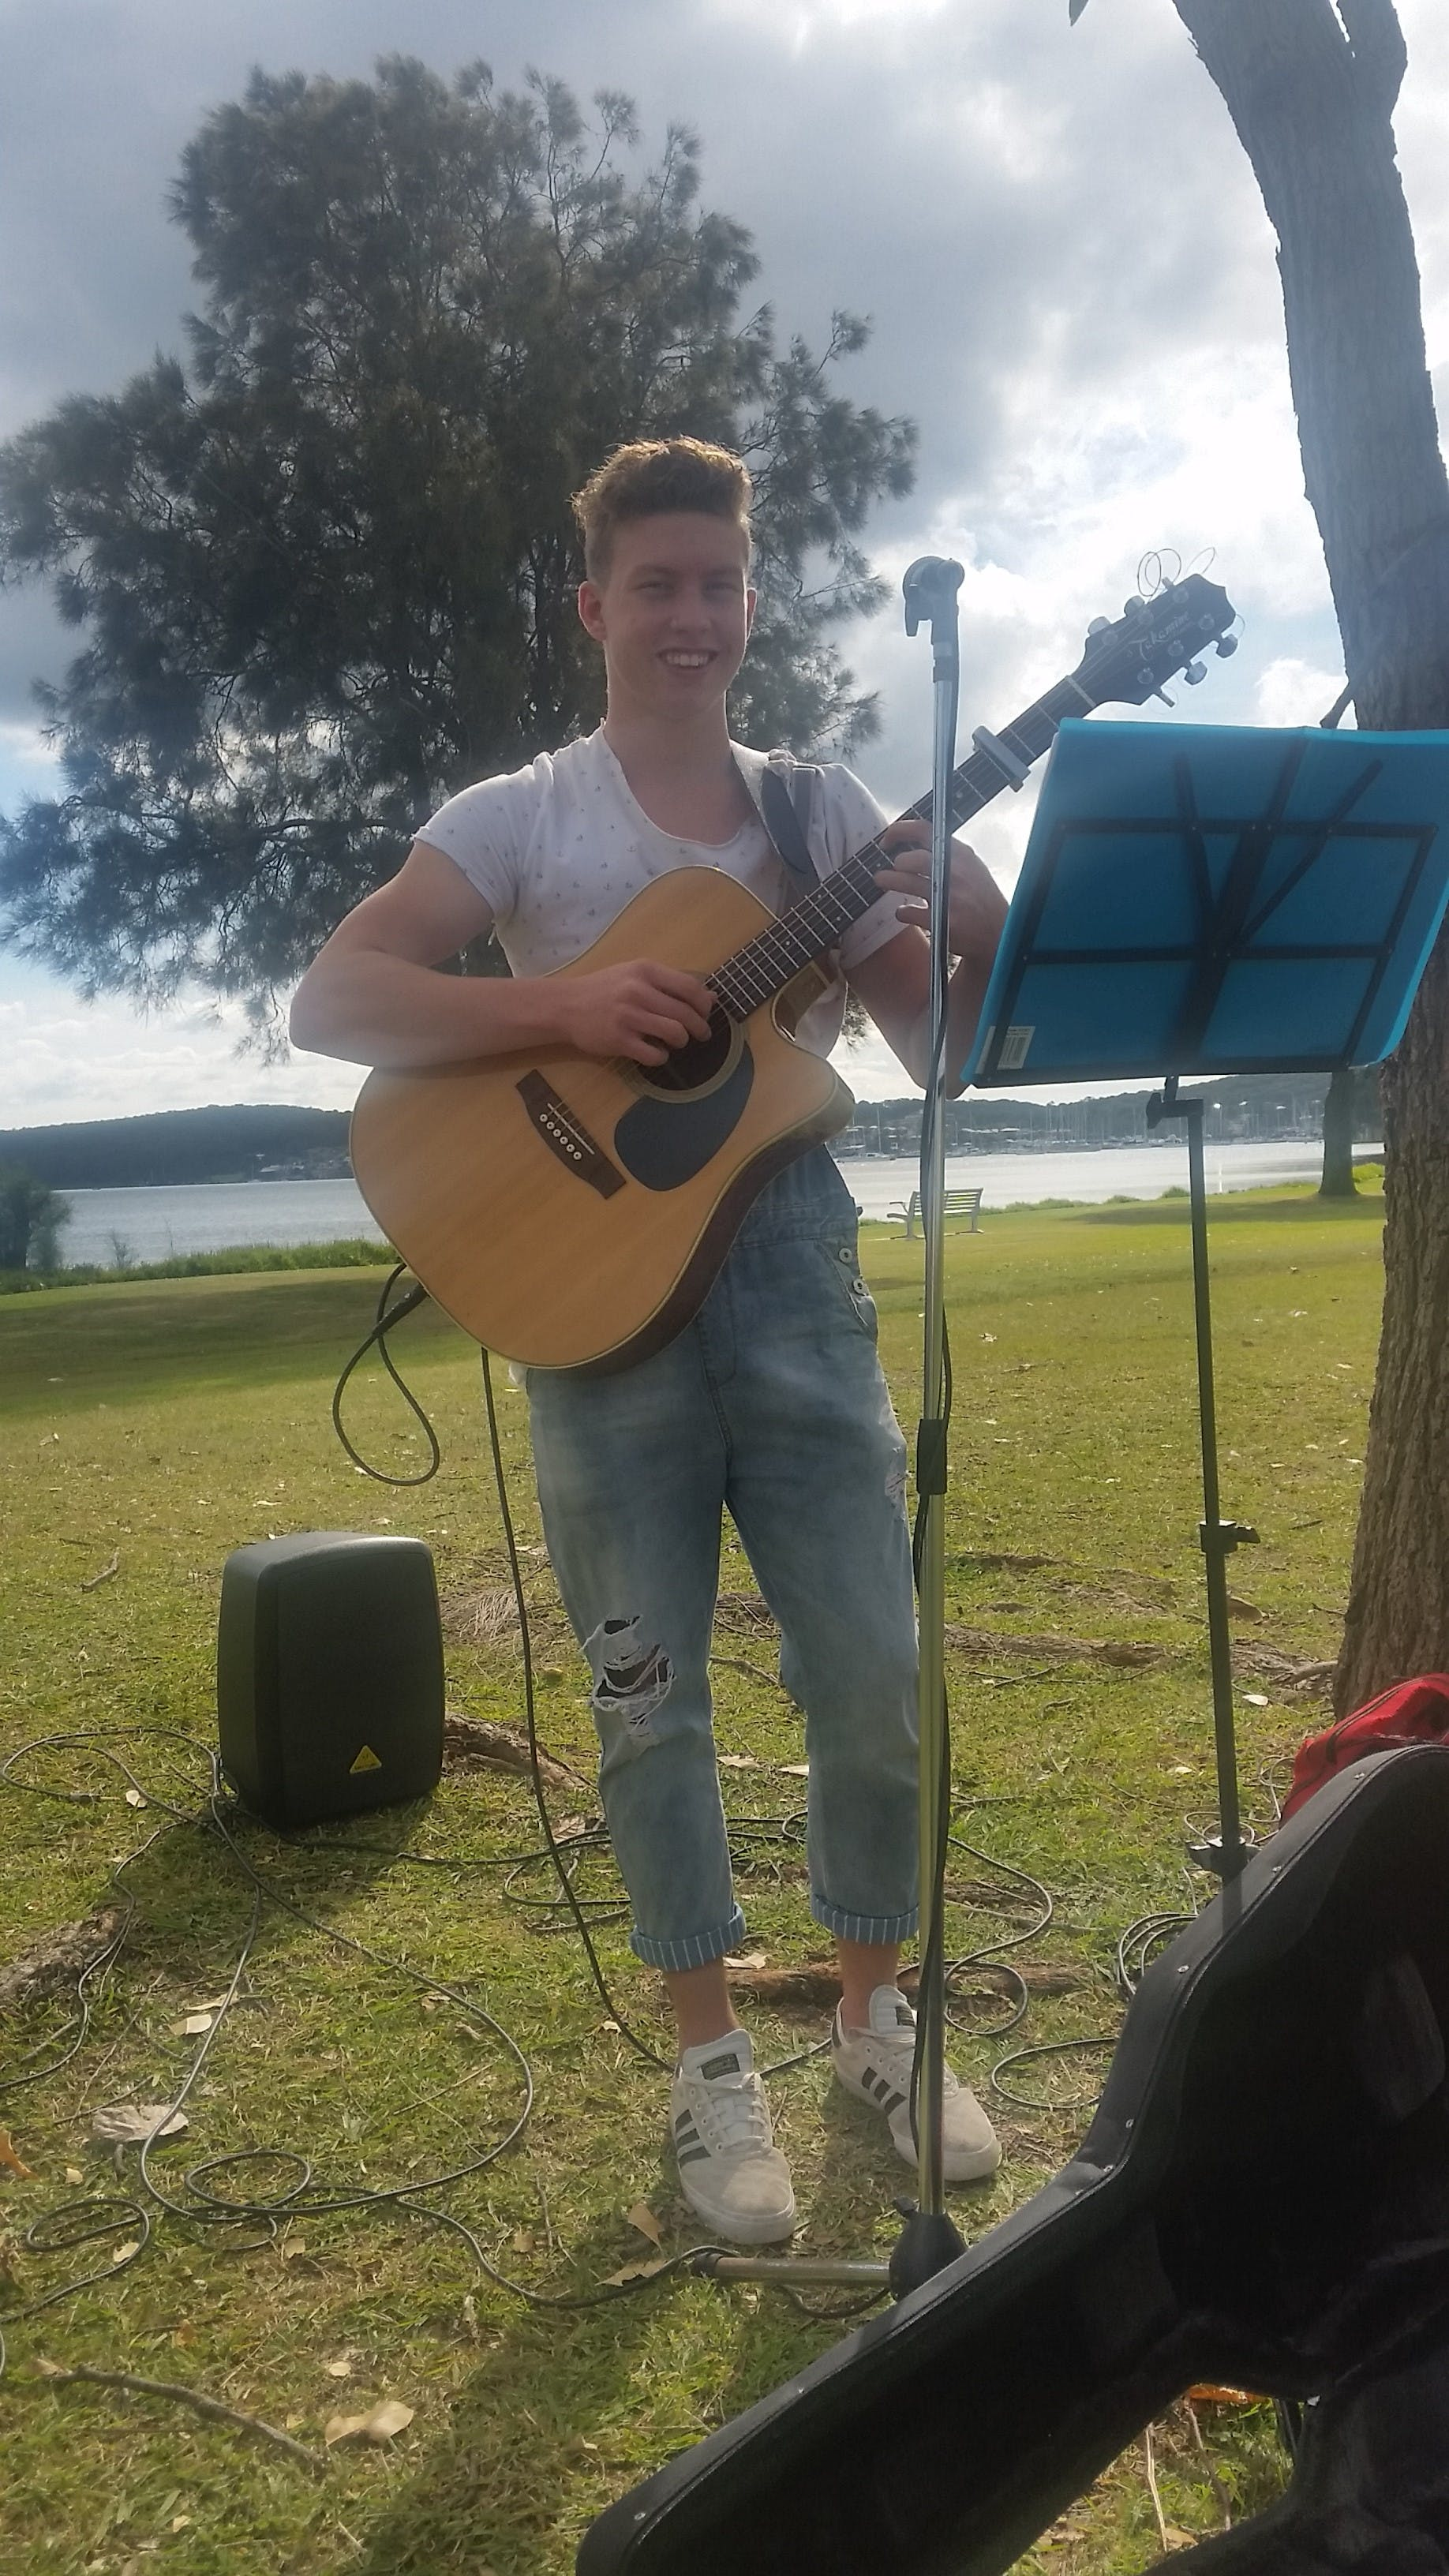 Local musician at Belmont South Foreshore Lake Mac Chats